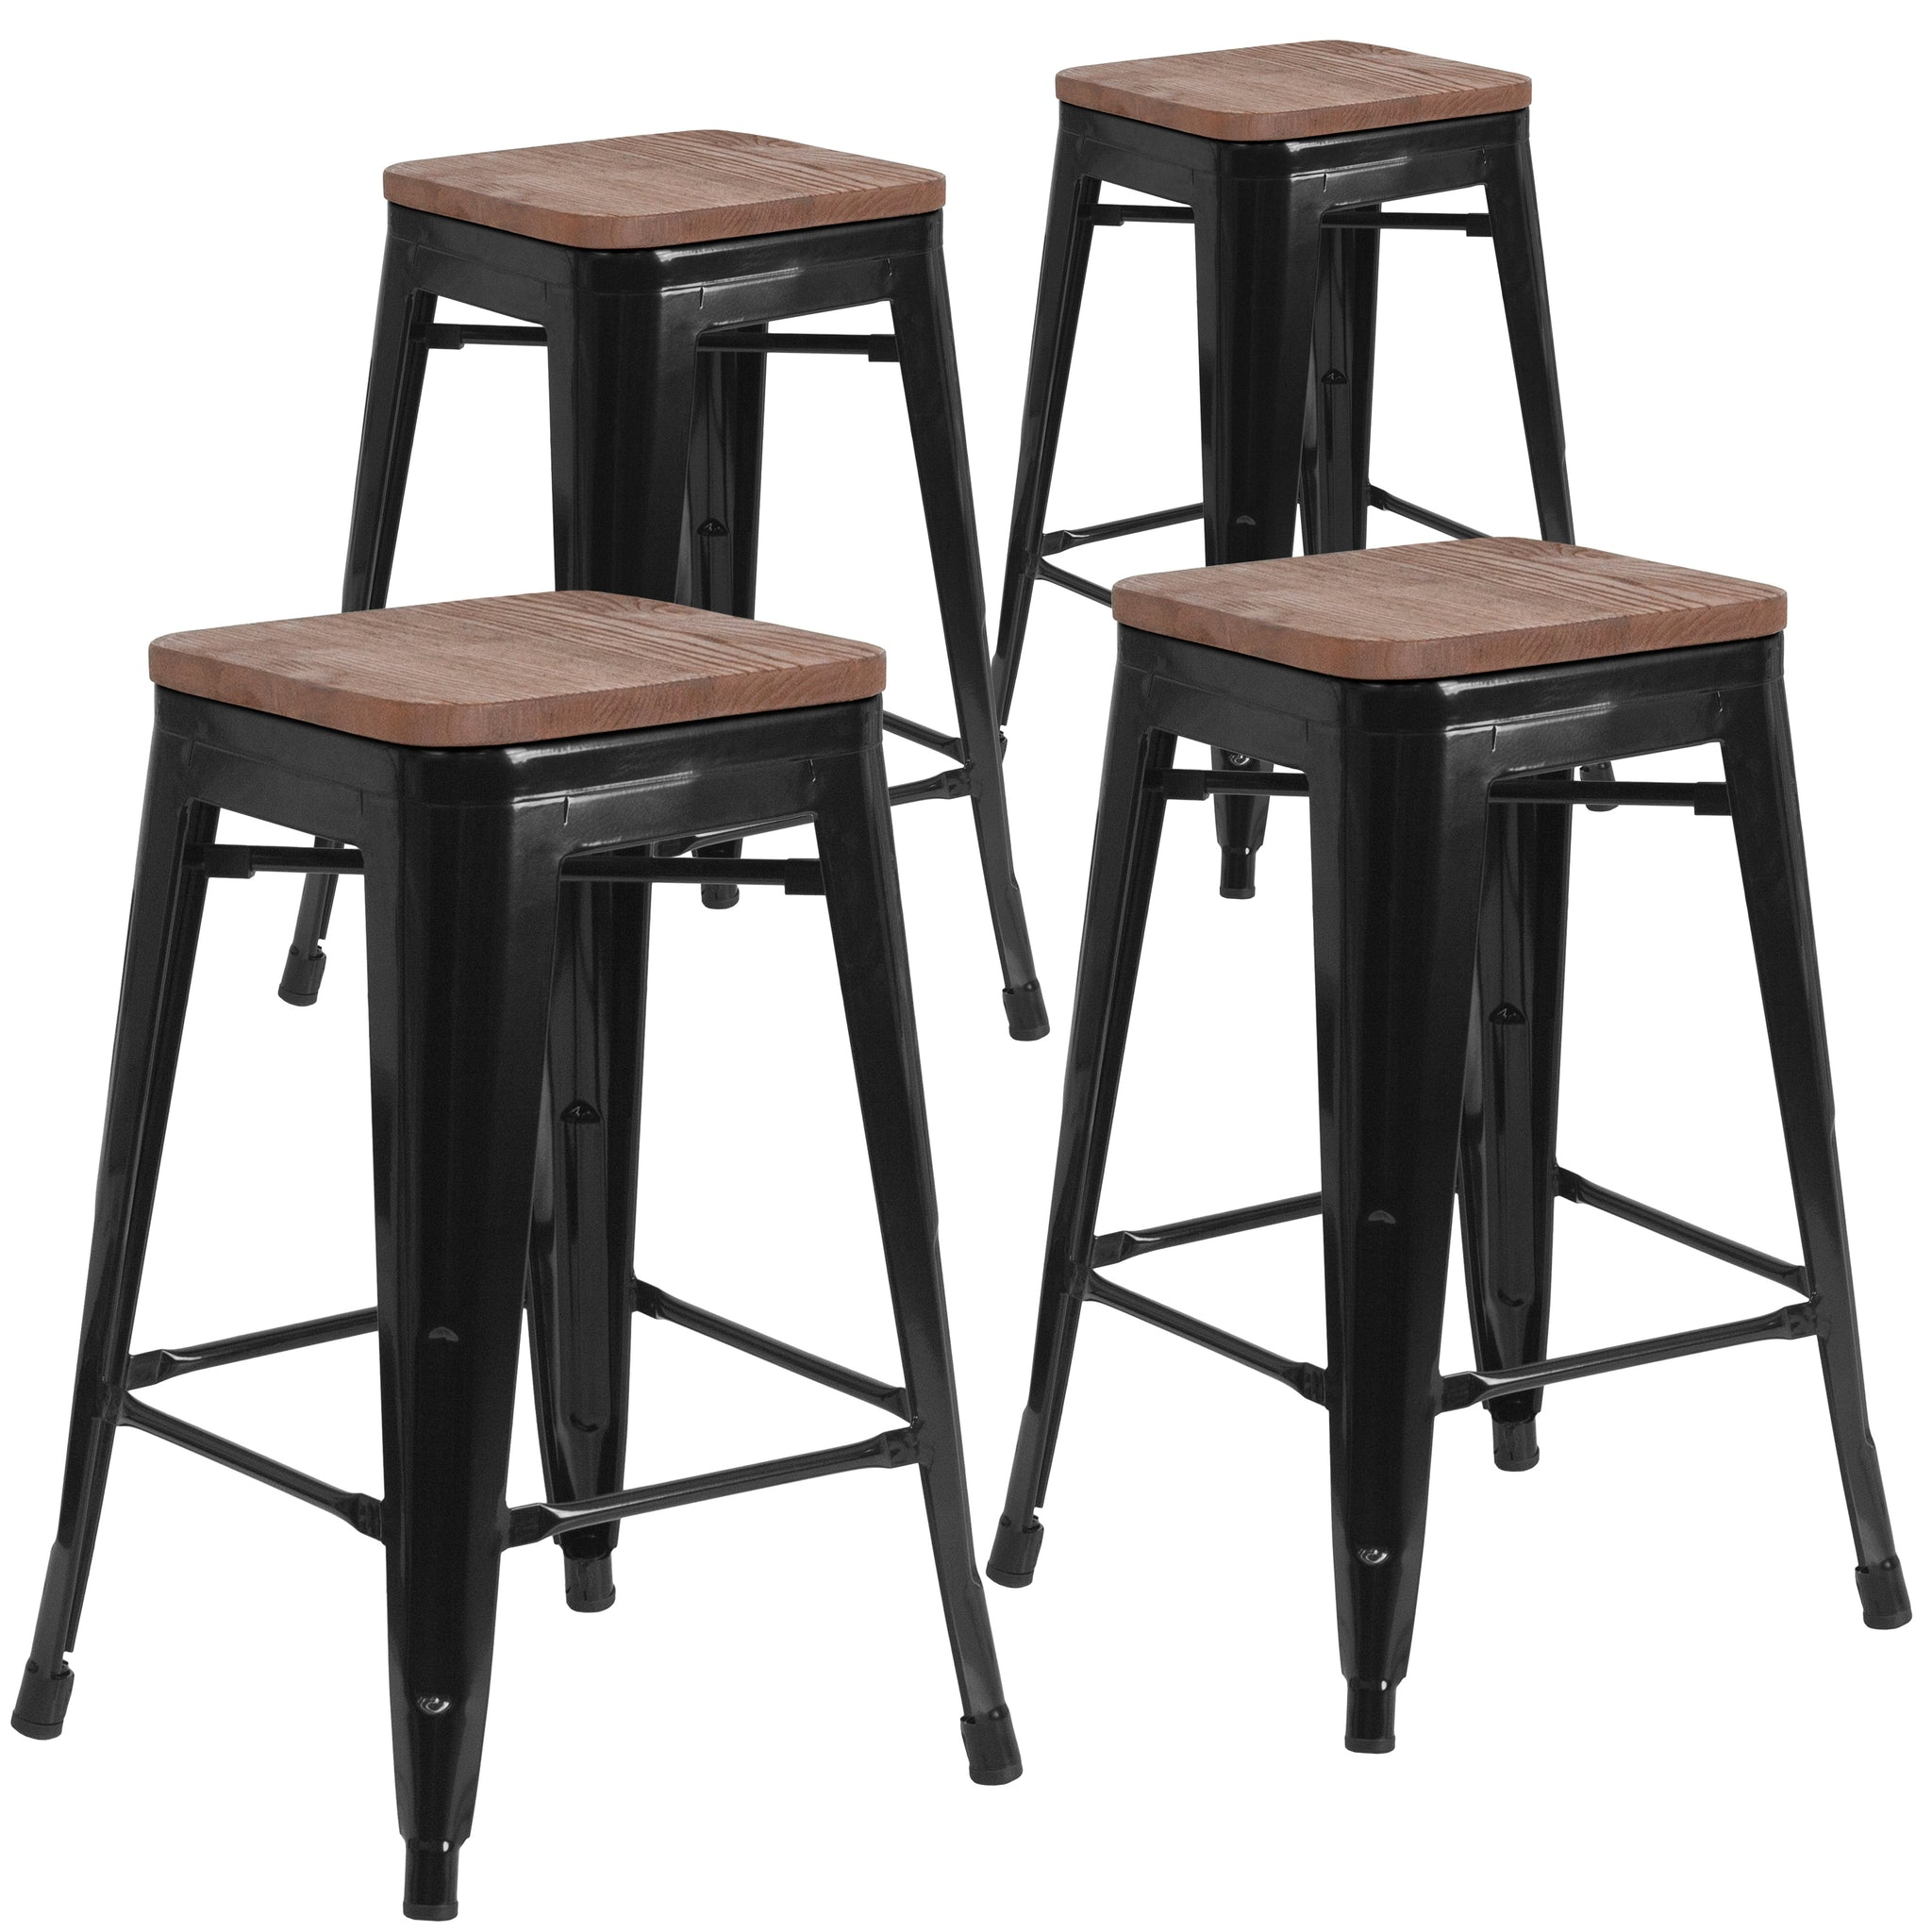 Swell 4 Pk 24 High Backless Metal Counter Height Stool With Square Wood Seat Black Machost Co Dining Chair Design Ideas Machostcouk